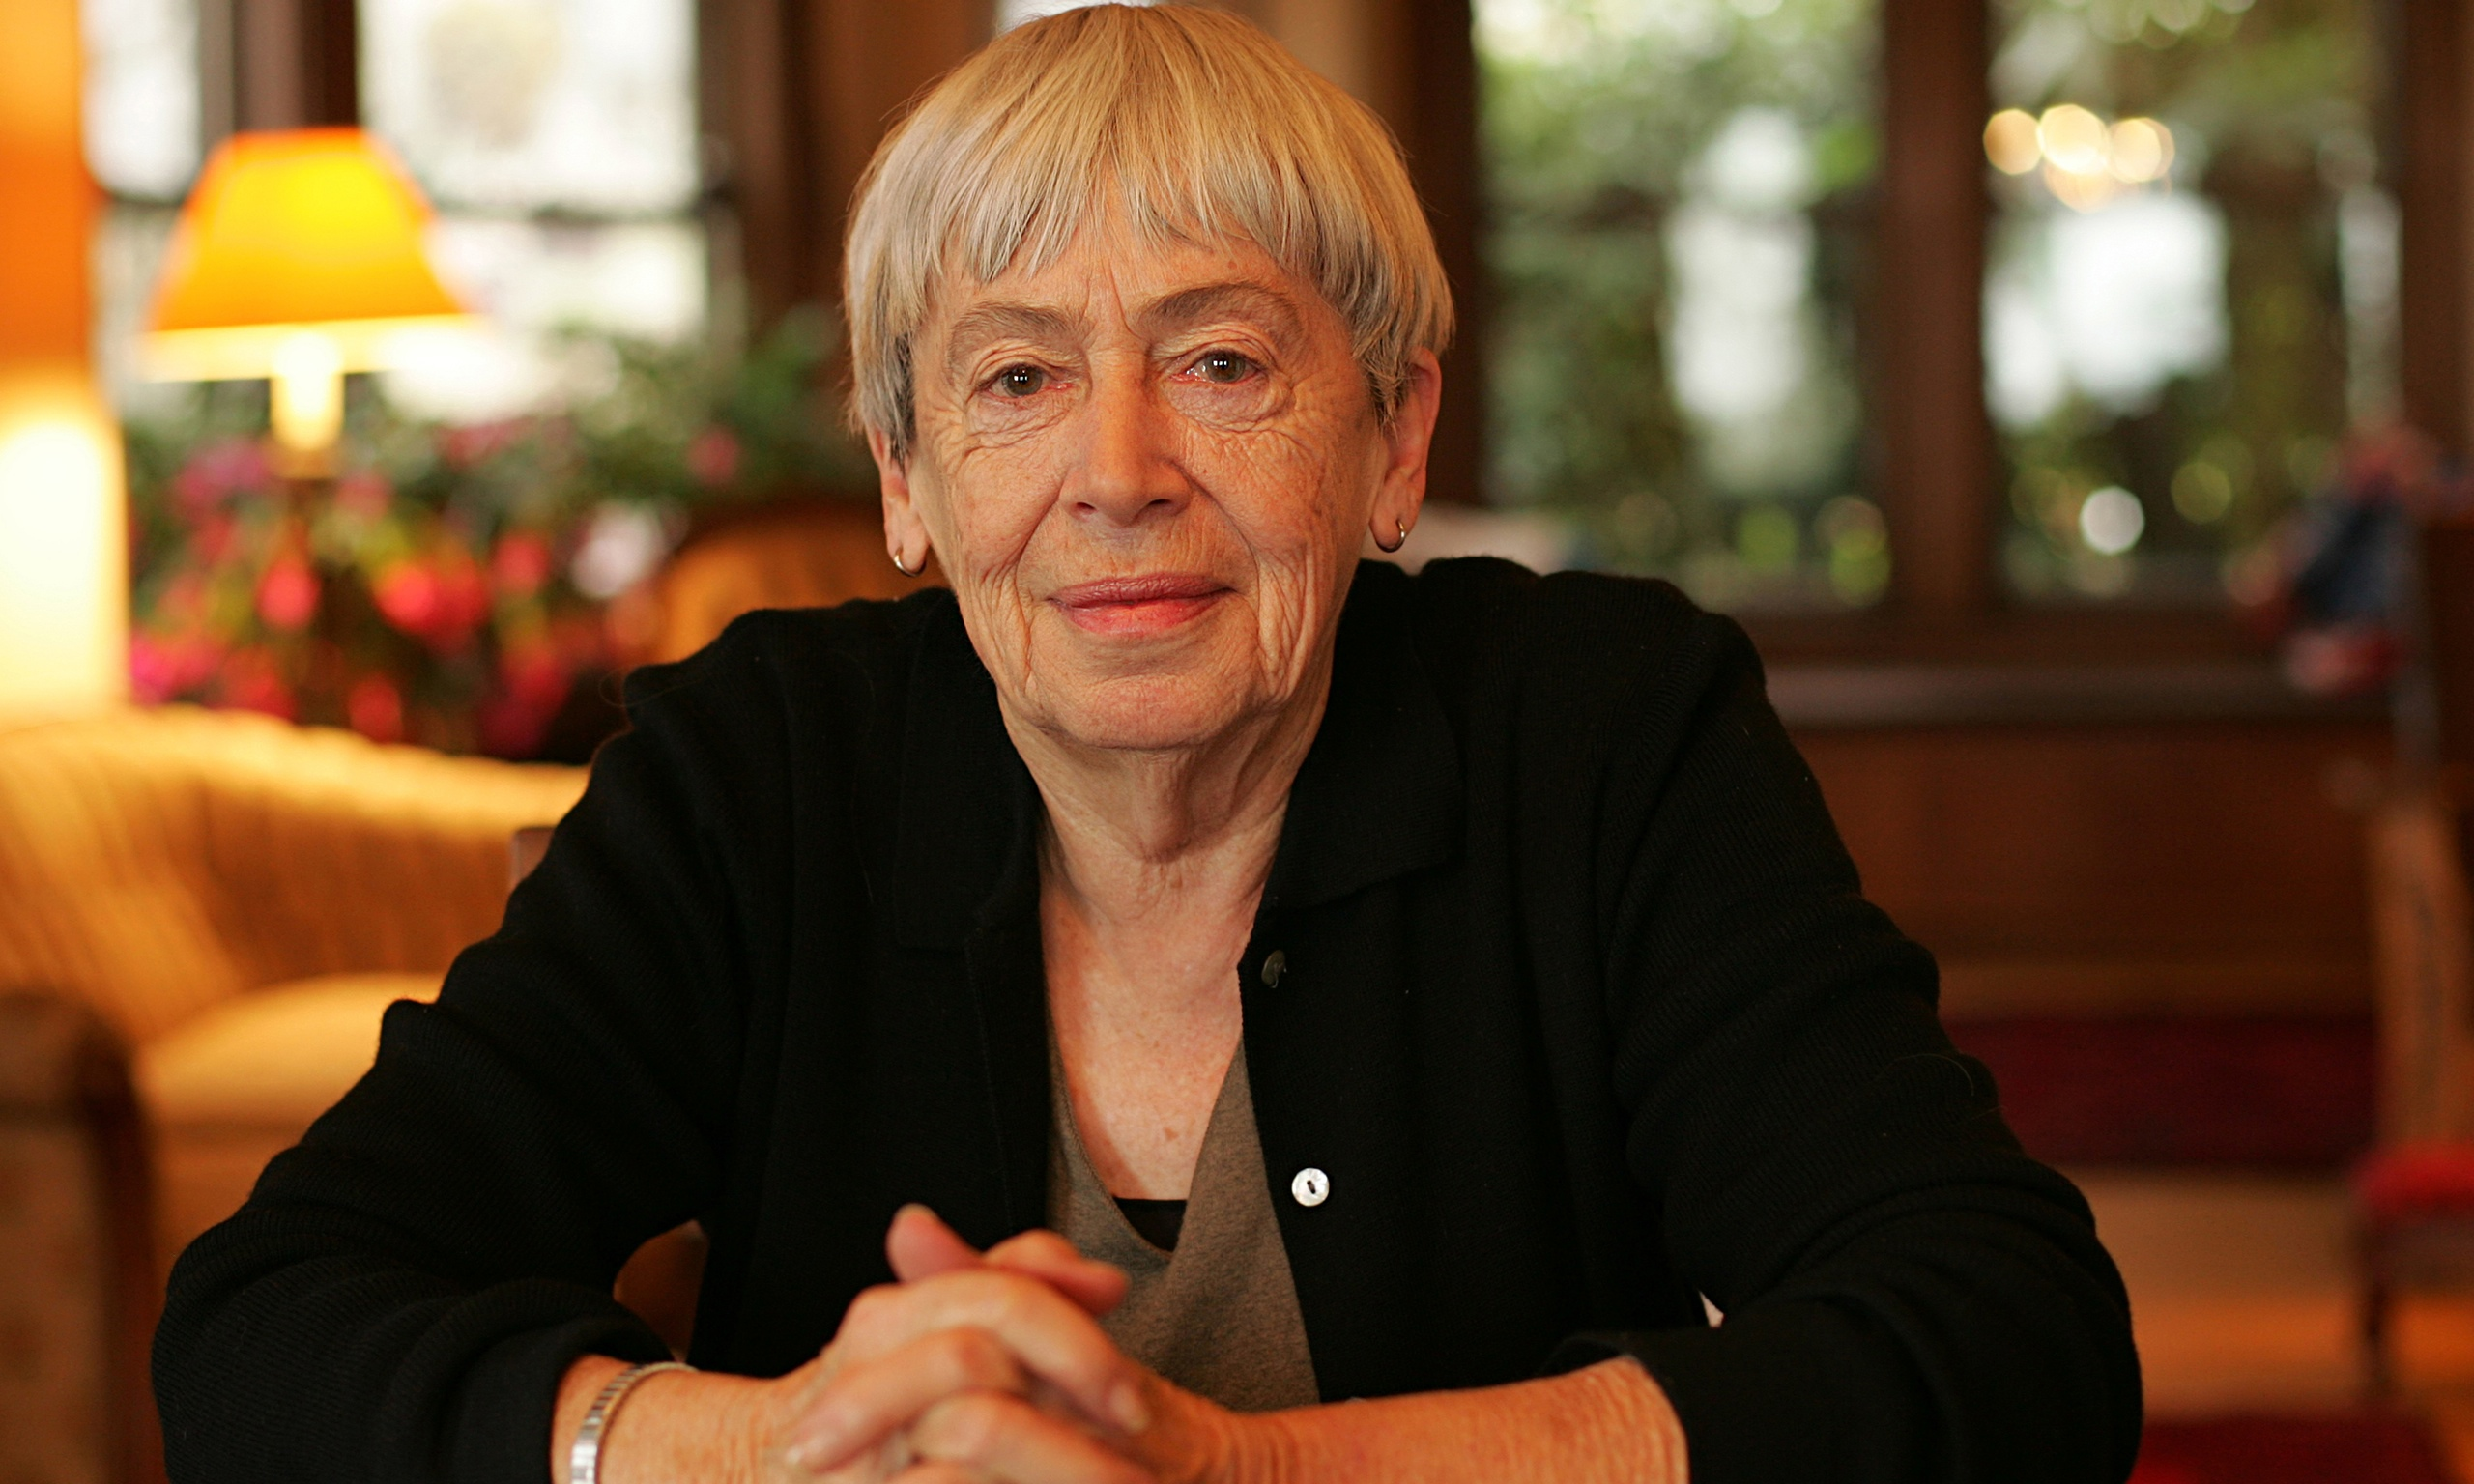 ursula k le guin The telling, the acclaimed sci-fi novel from influential american author ursula k  le guin — who died in january — is being adapted for the big.